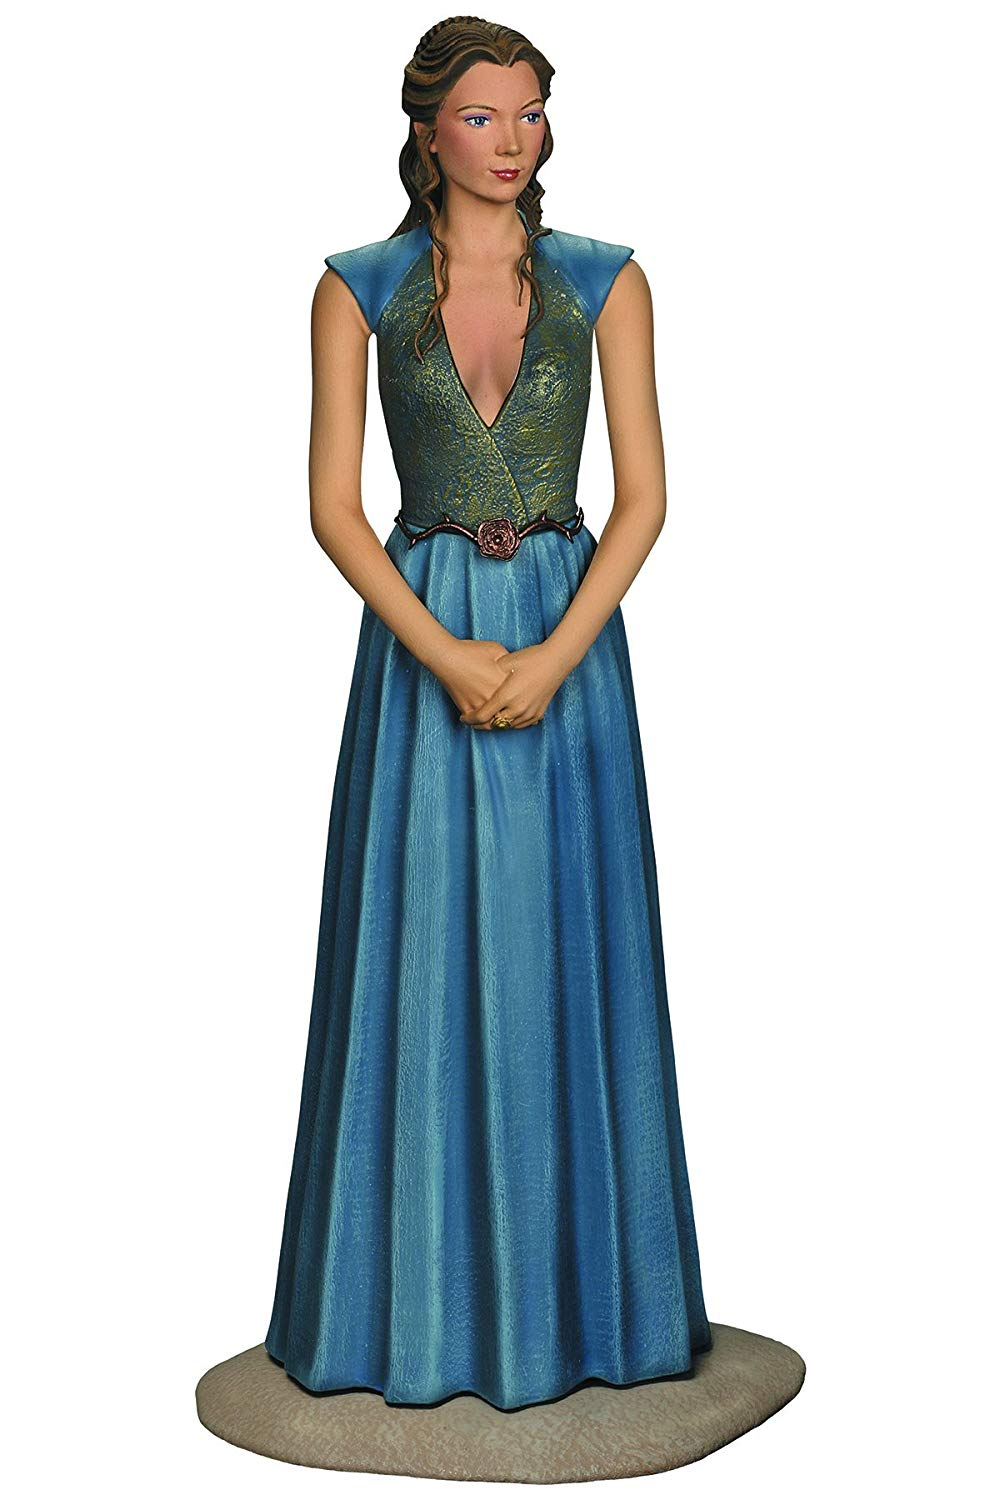 Game Of Thrones Figure Margaery Tyrell